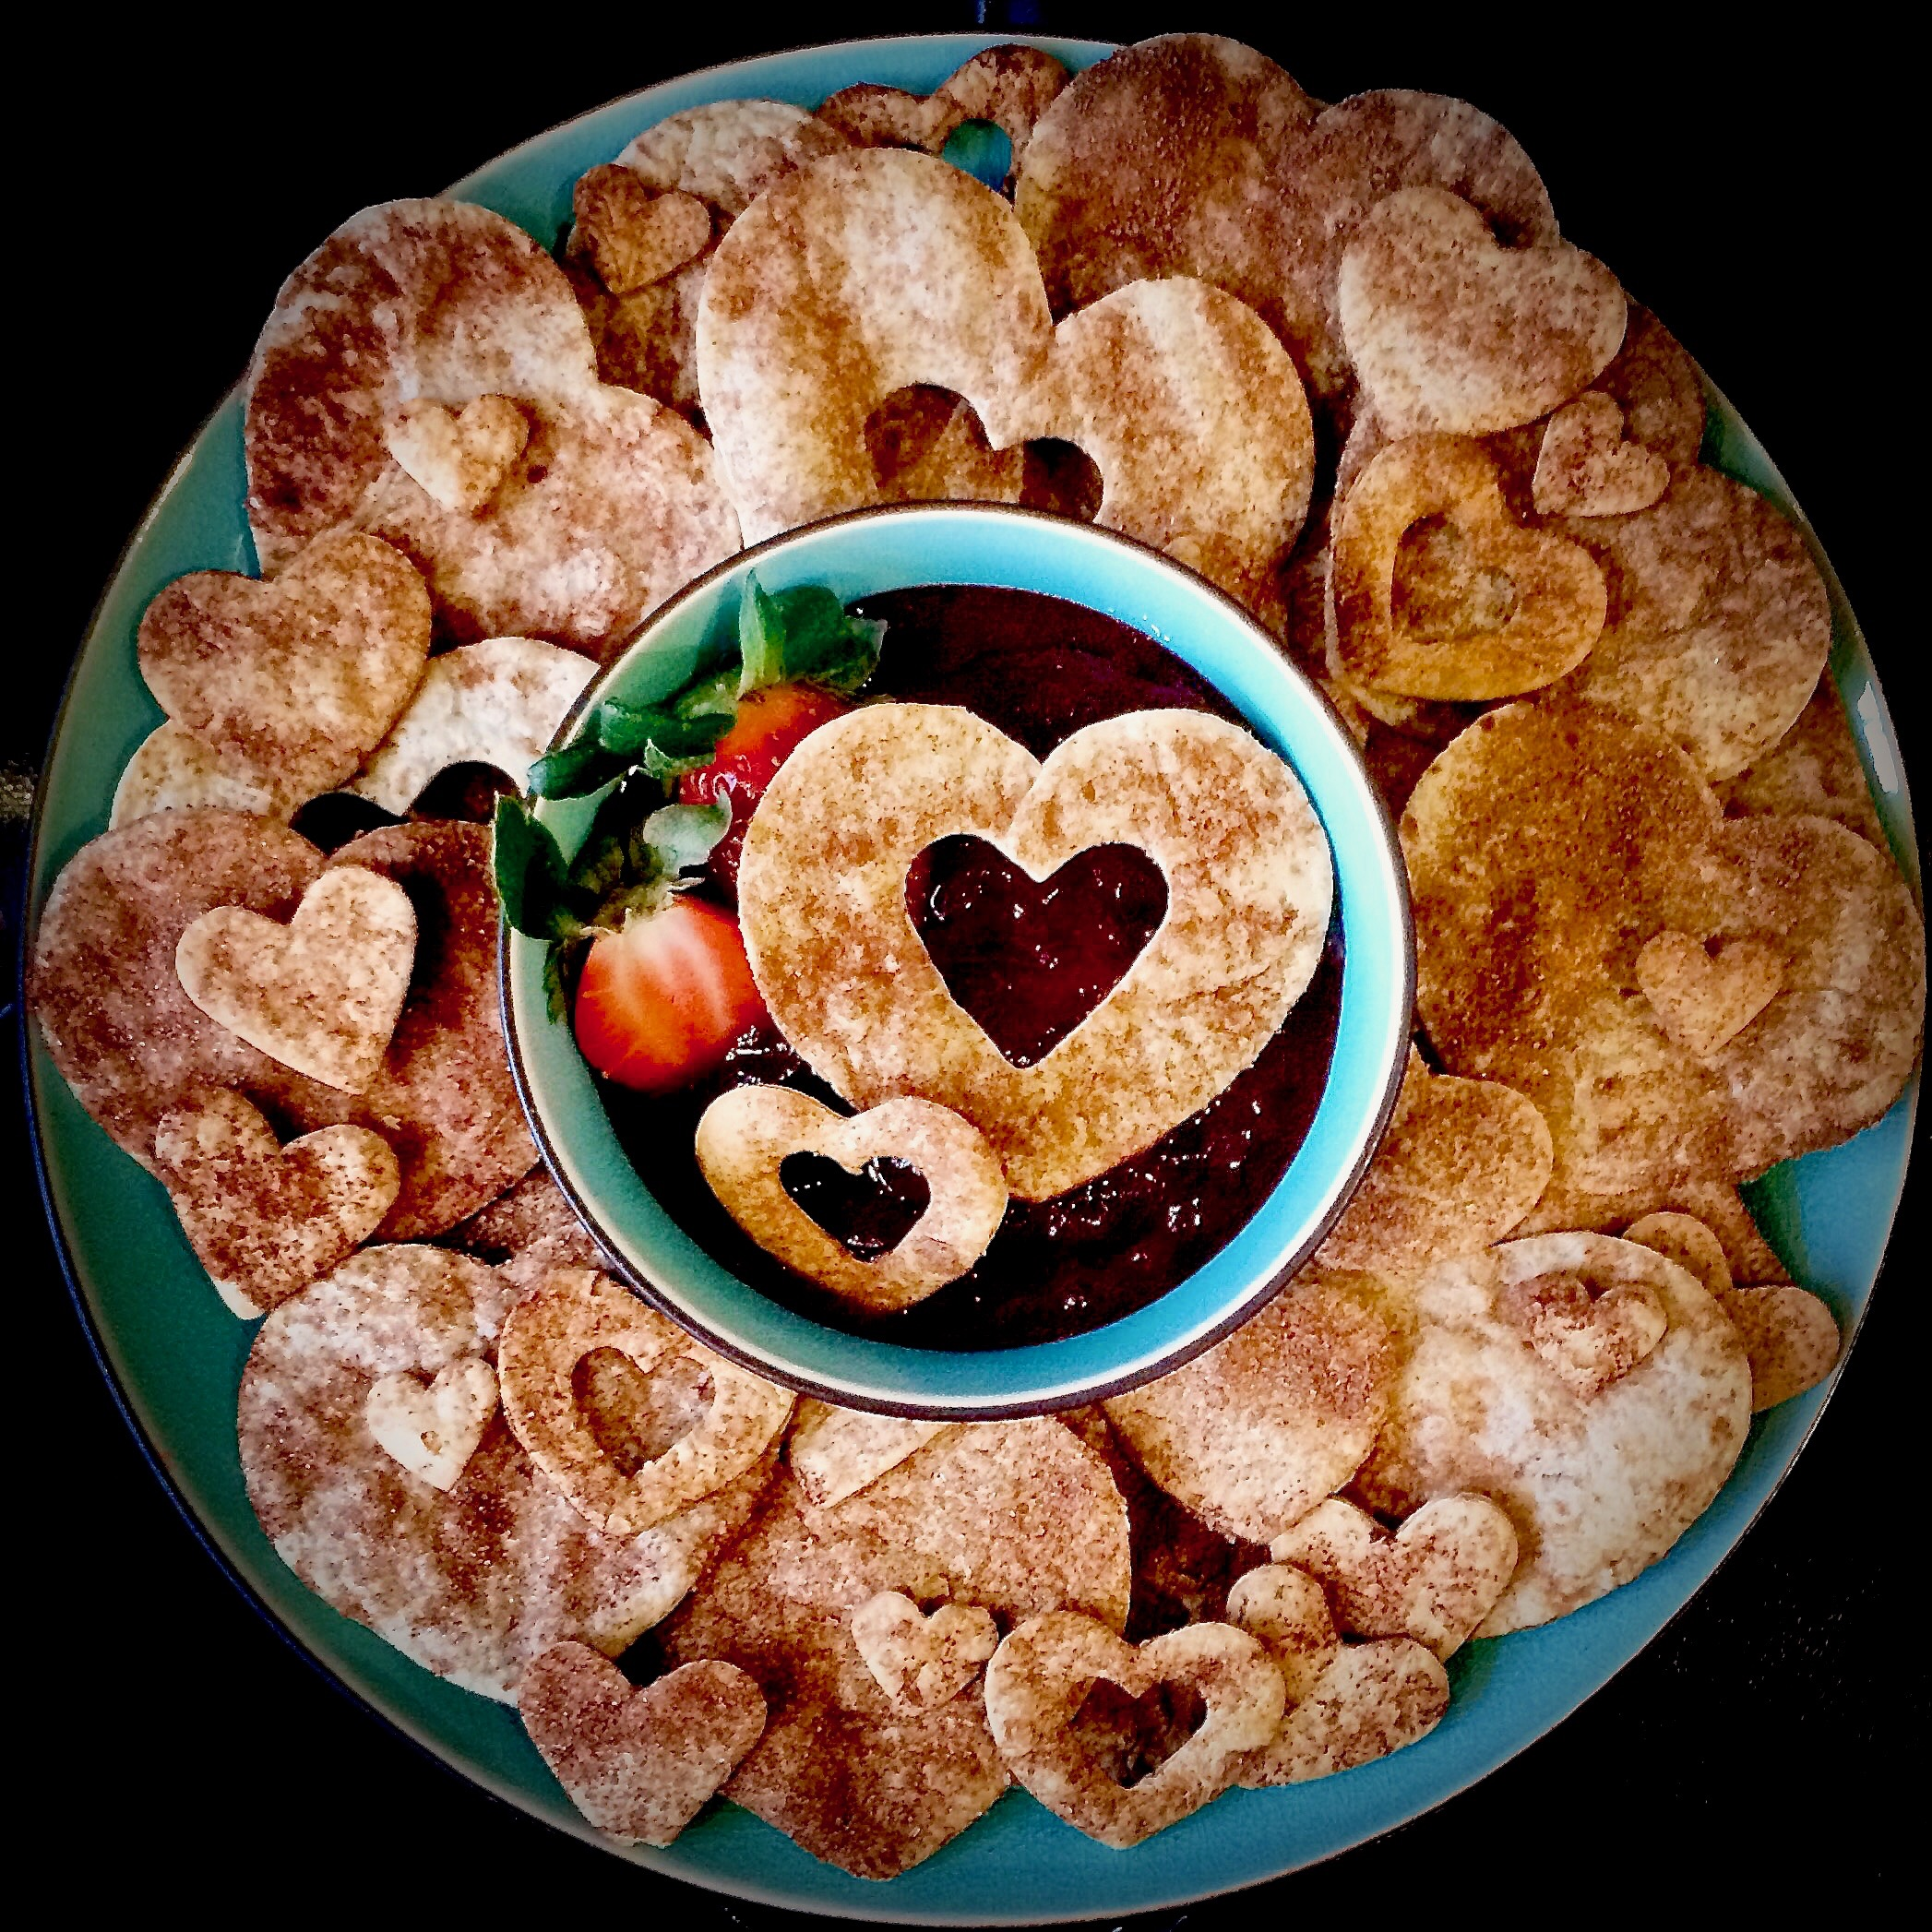 Baked Cinnamon Hearts with Sweet Cherry Dipping Sauce